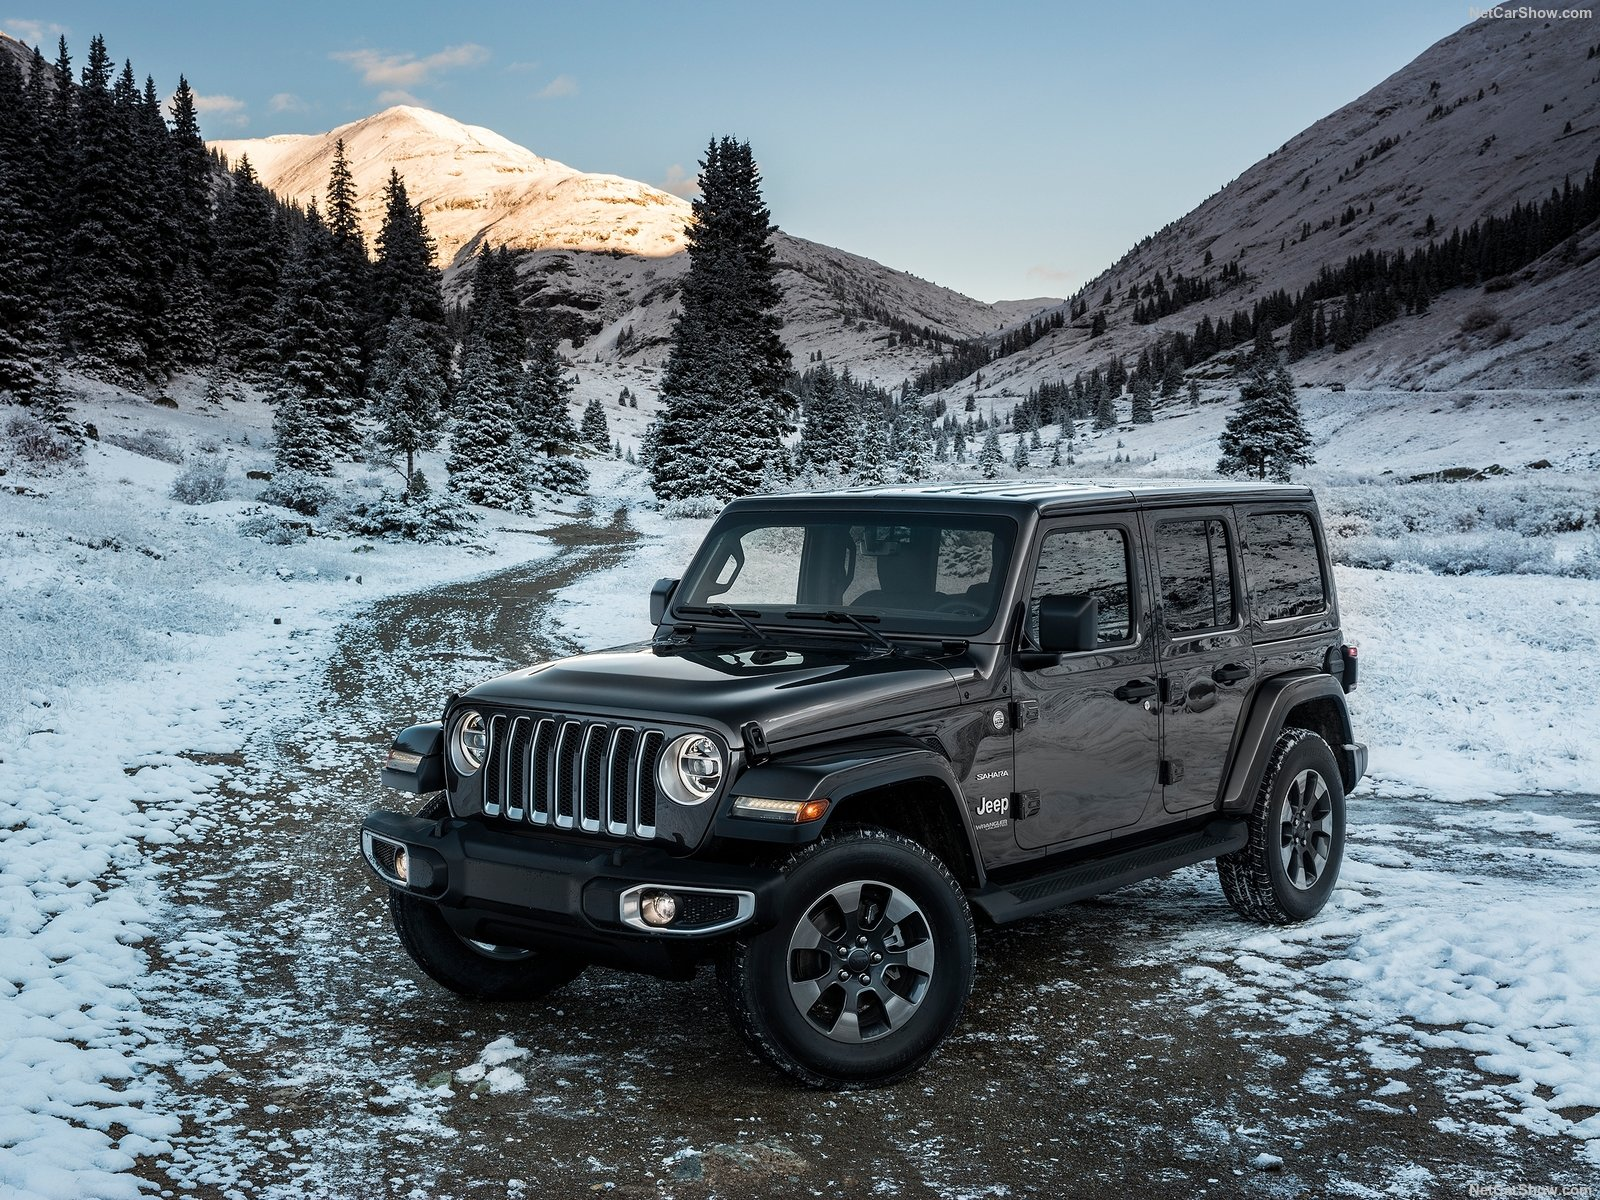 Jeep Wrangler Unlimited Picture 184087 Jeep Photo Gallery Carsbase Com